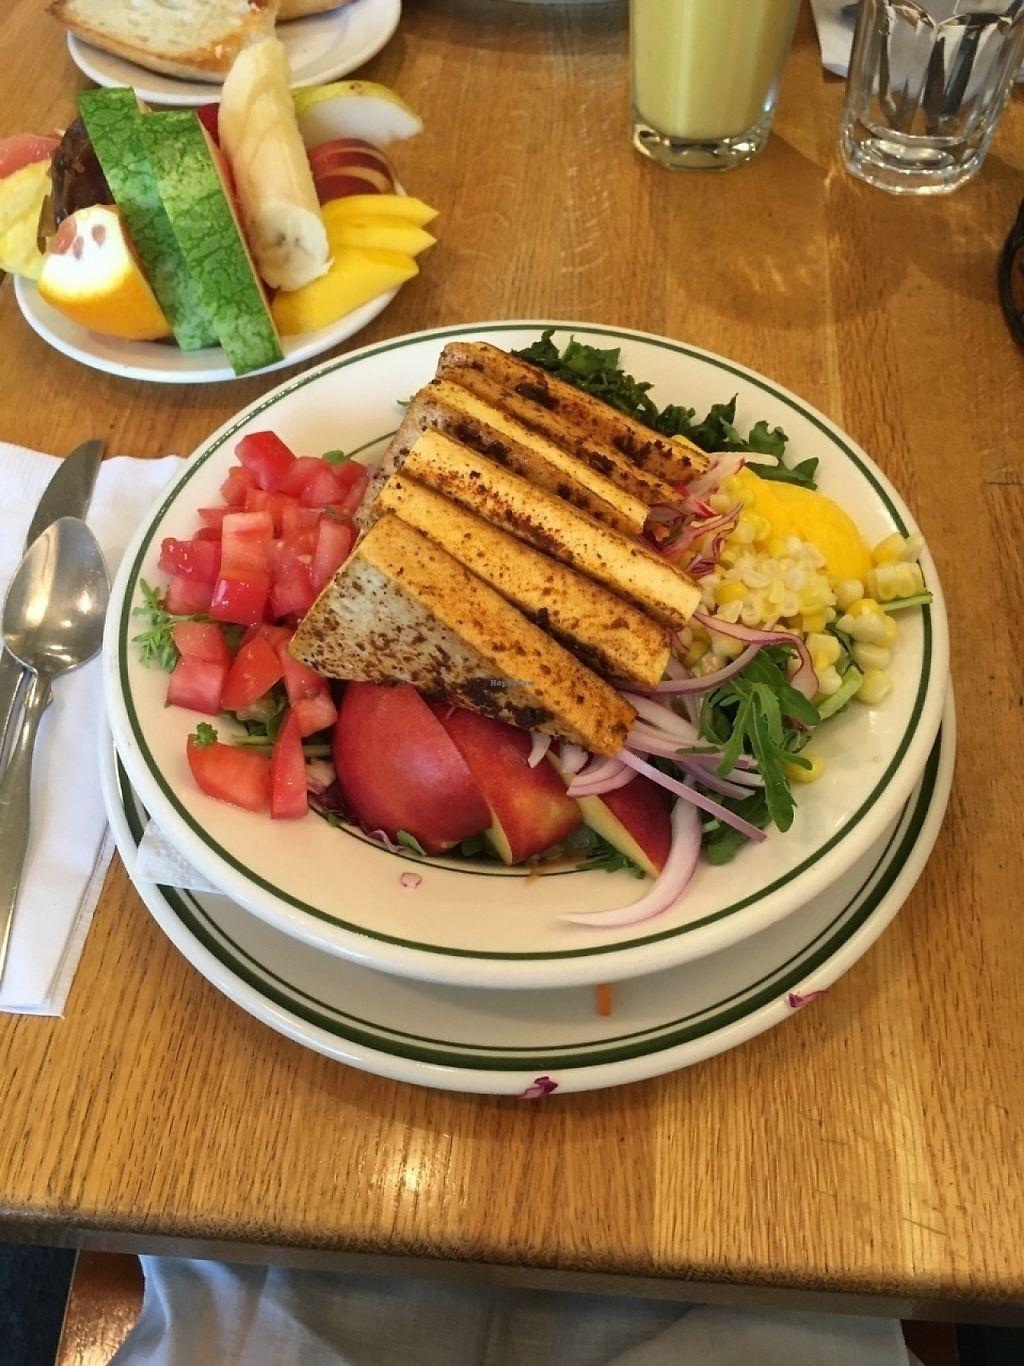 "Photo of Penny Cluse Cafe  by <a href=""/members/profile/rainean23"">rainean23</a> <br/>Marinated Tofu Salad <br/> June 11, 2016  - <a href='/contact/abuse/image/4190/231563'>Report</a>"